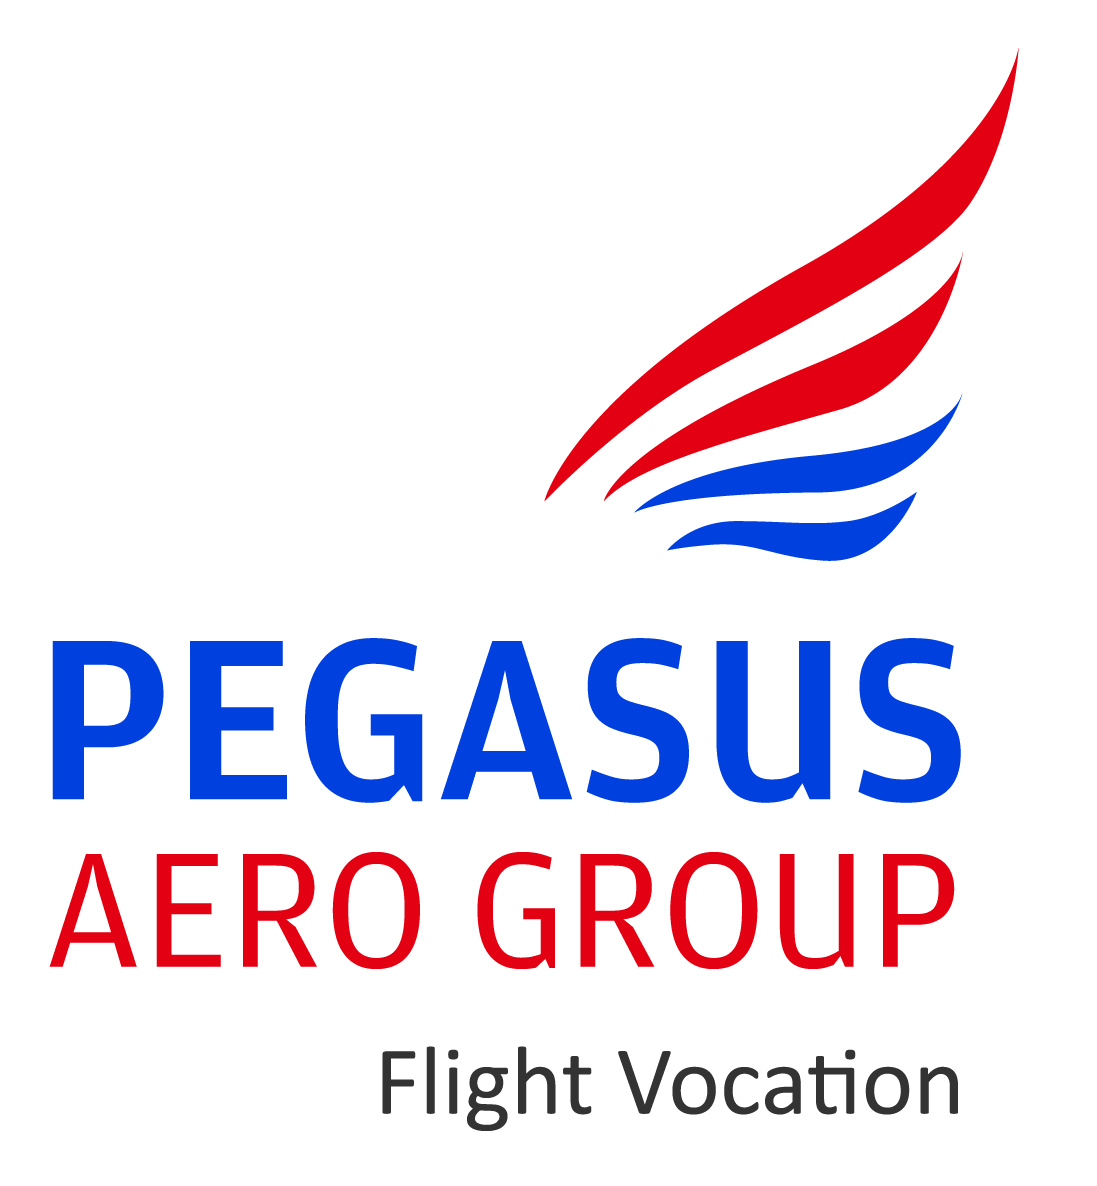 Pegasus Aero Group